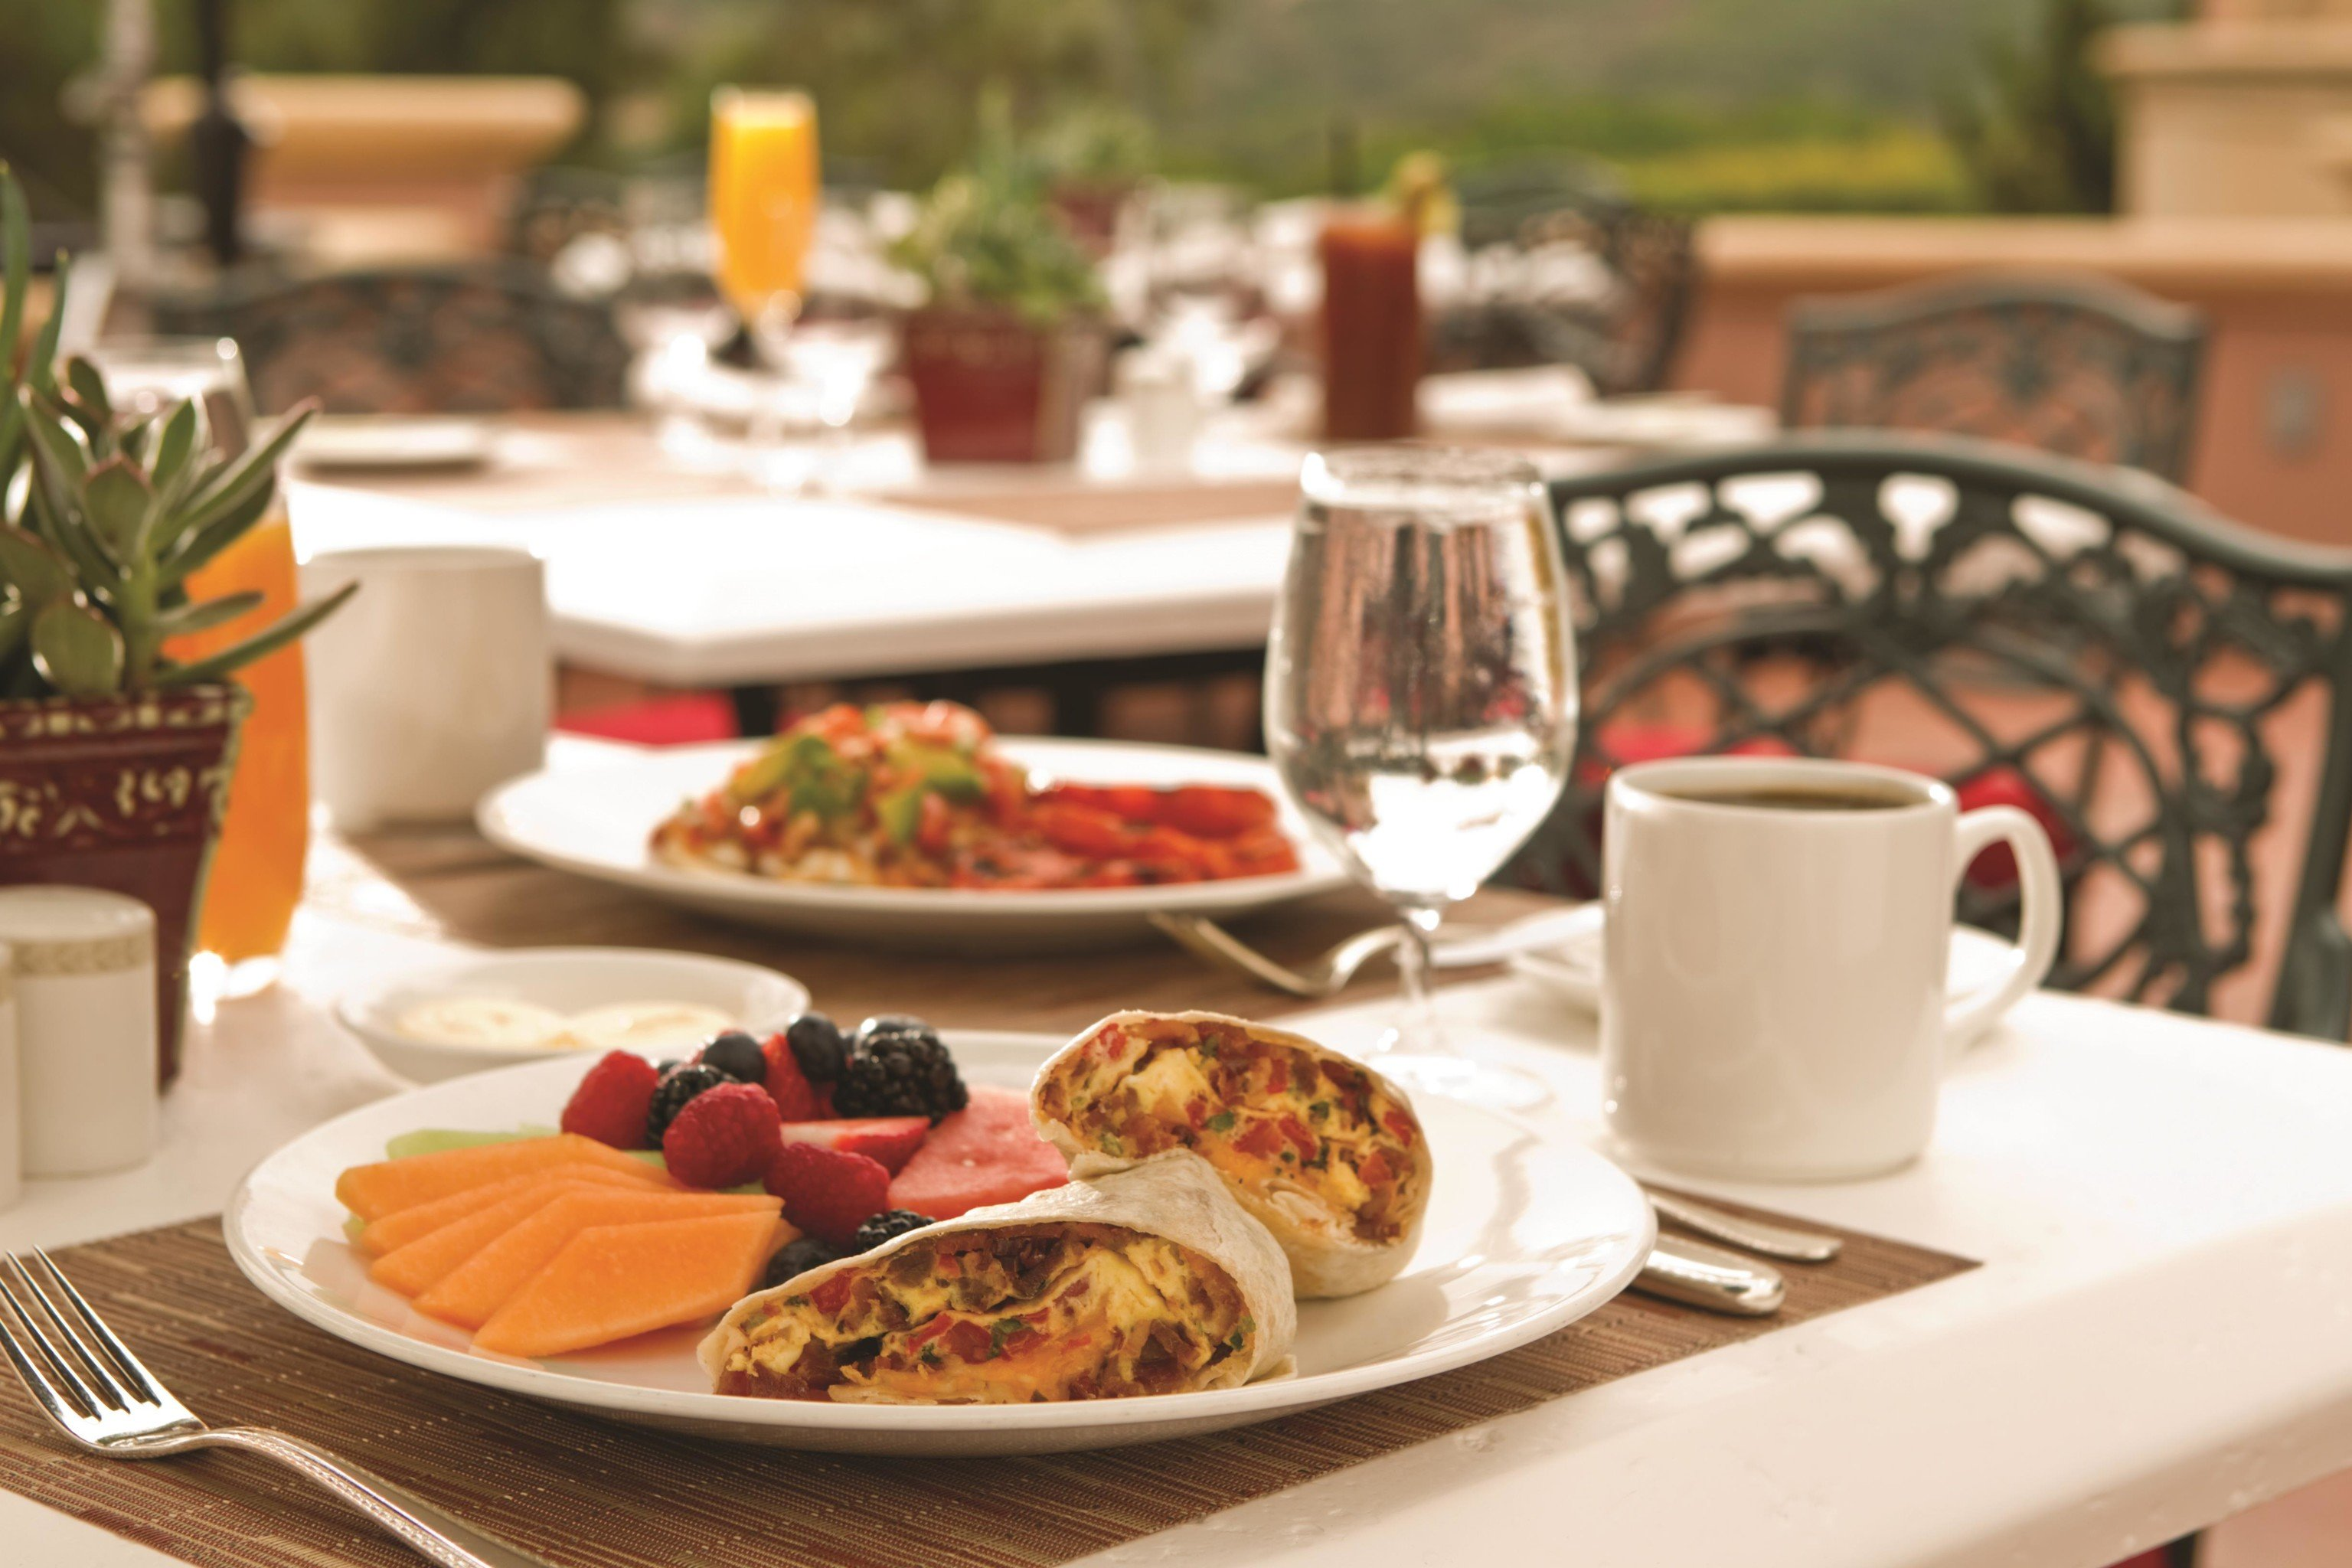 Hotels table plate food meal dish brunch lunch restaurant breakfast dinner supper cuisine sense dining table